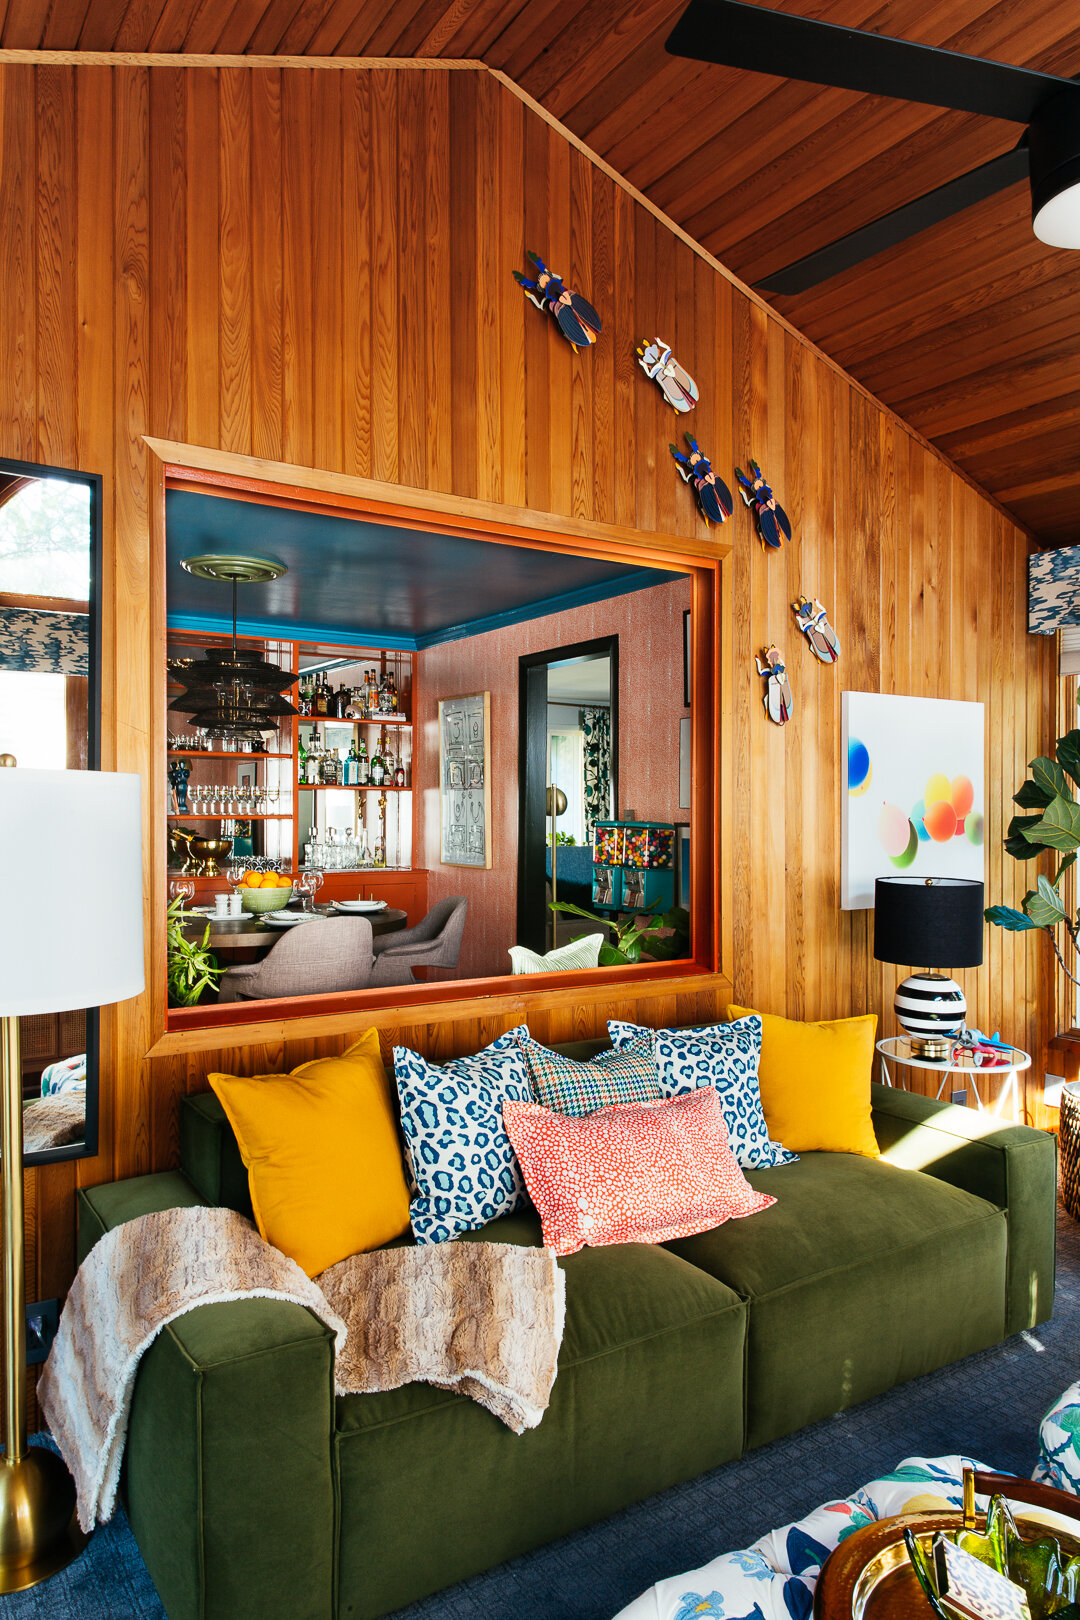 sm ORC bobby berk sofa in sun room designed by TheRathProject.jpg